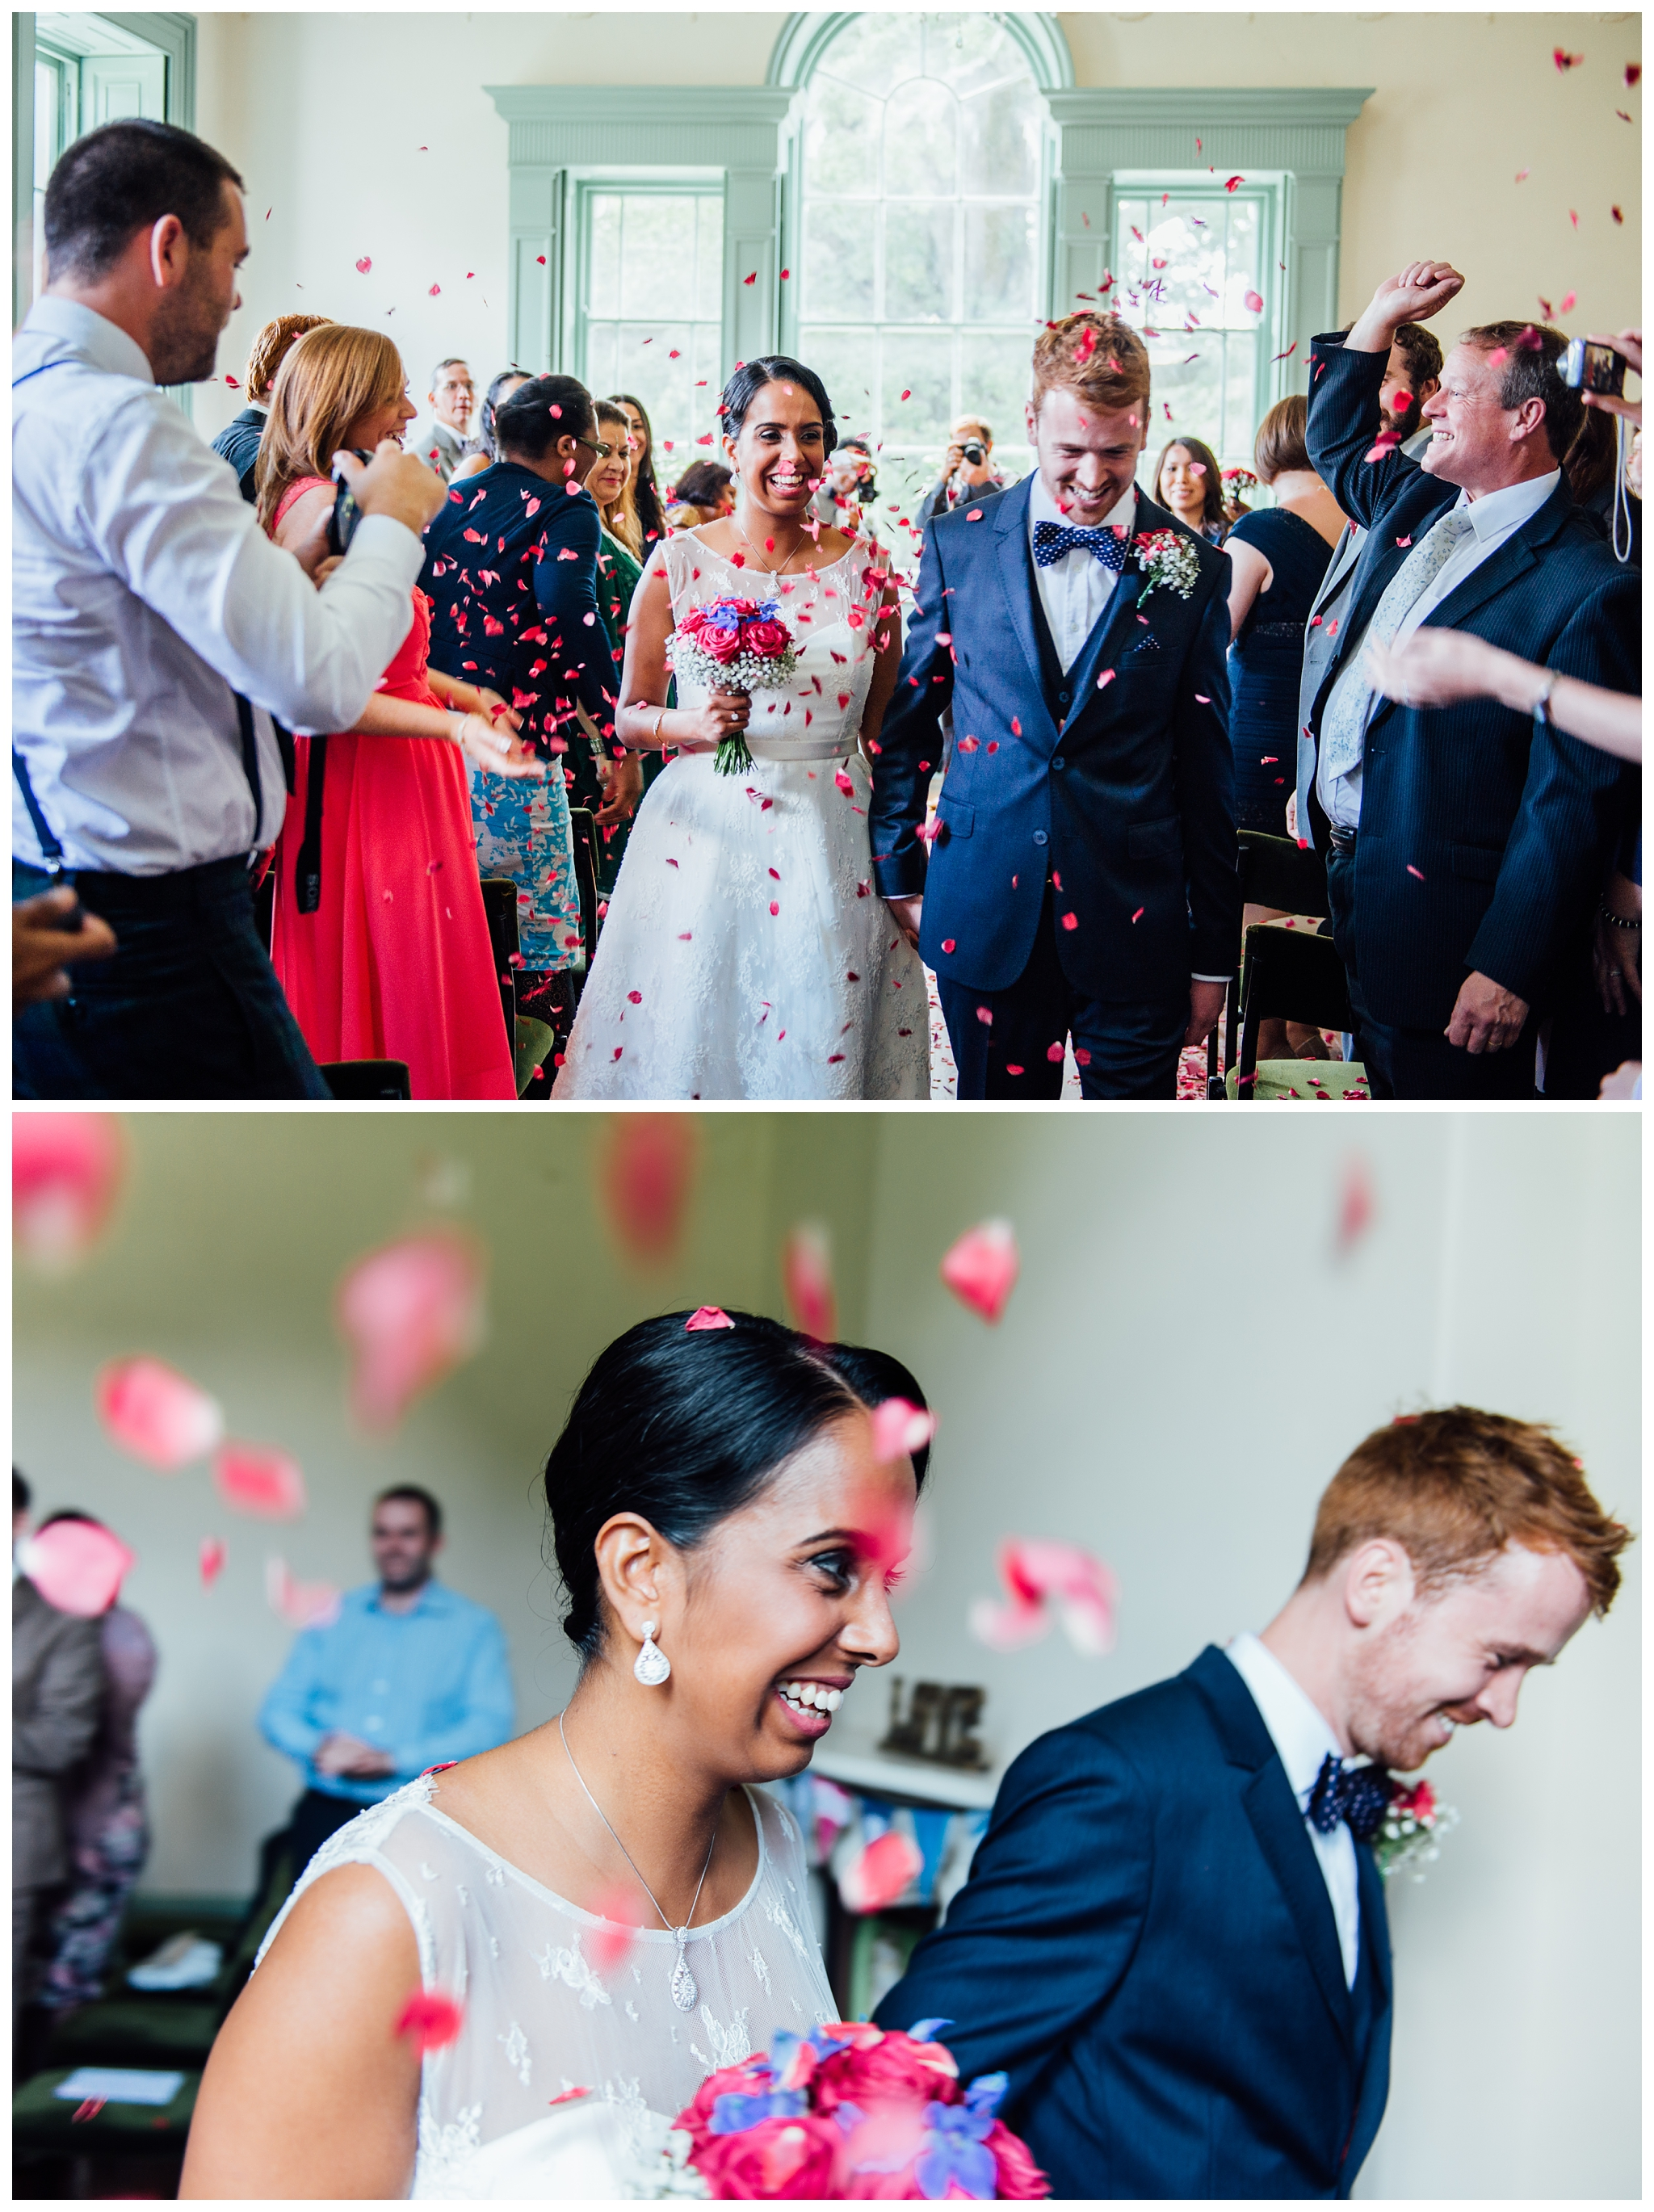 Rich&Dhikshana_Lupton_House_Devon_Hindu_English_Fushion_Wedding_0026.jpg